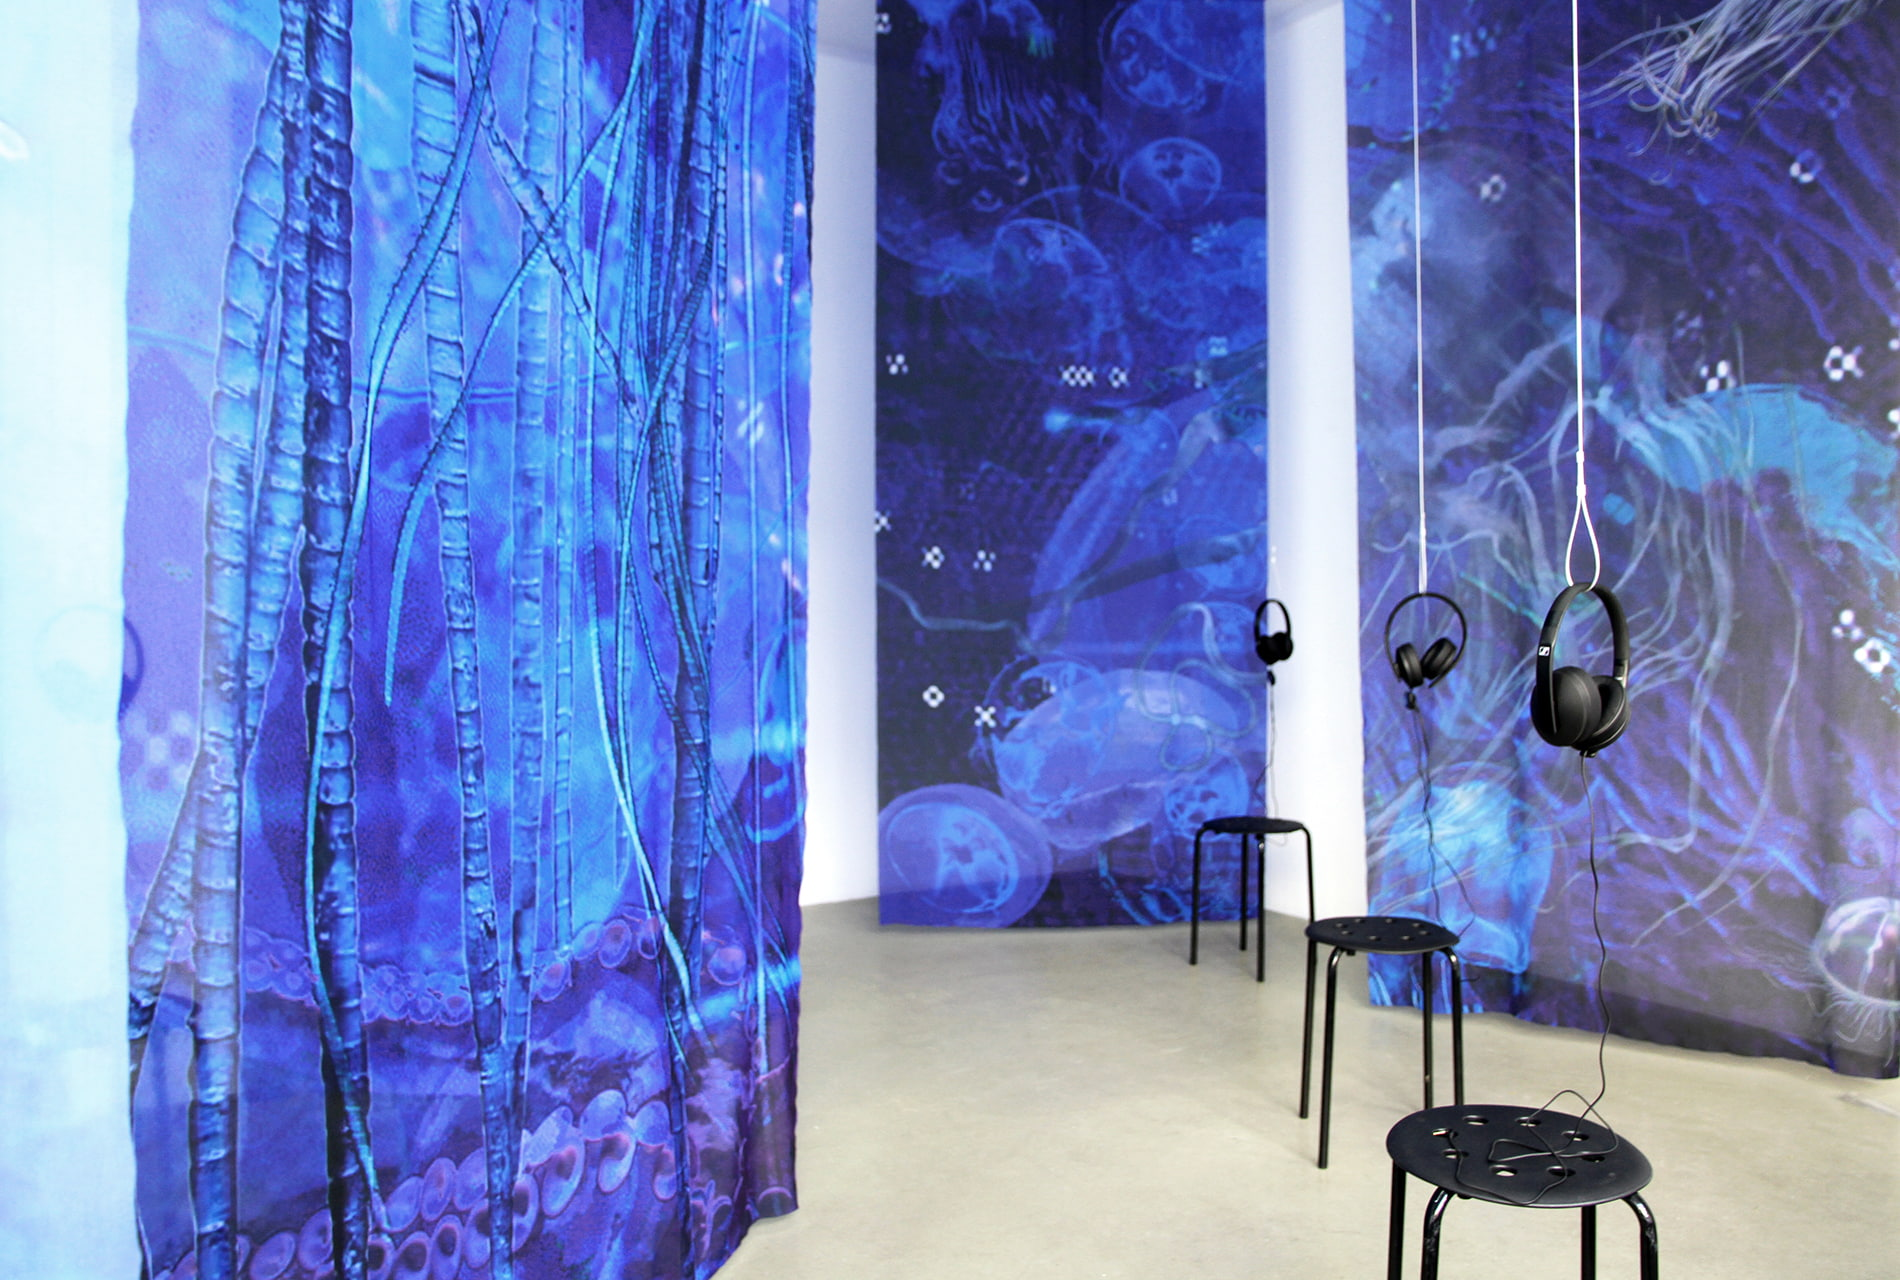 Installation view of Einen Riesigen Schwarm at Digital Art Space Munich - large-format textile banners and sound installation